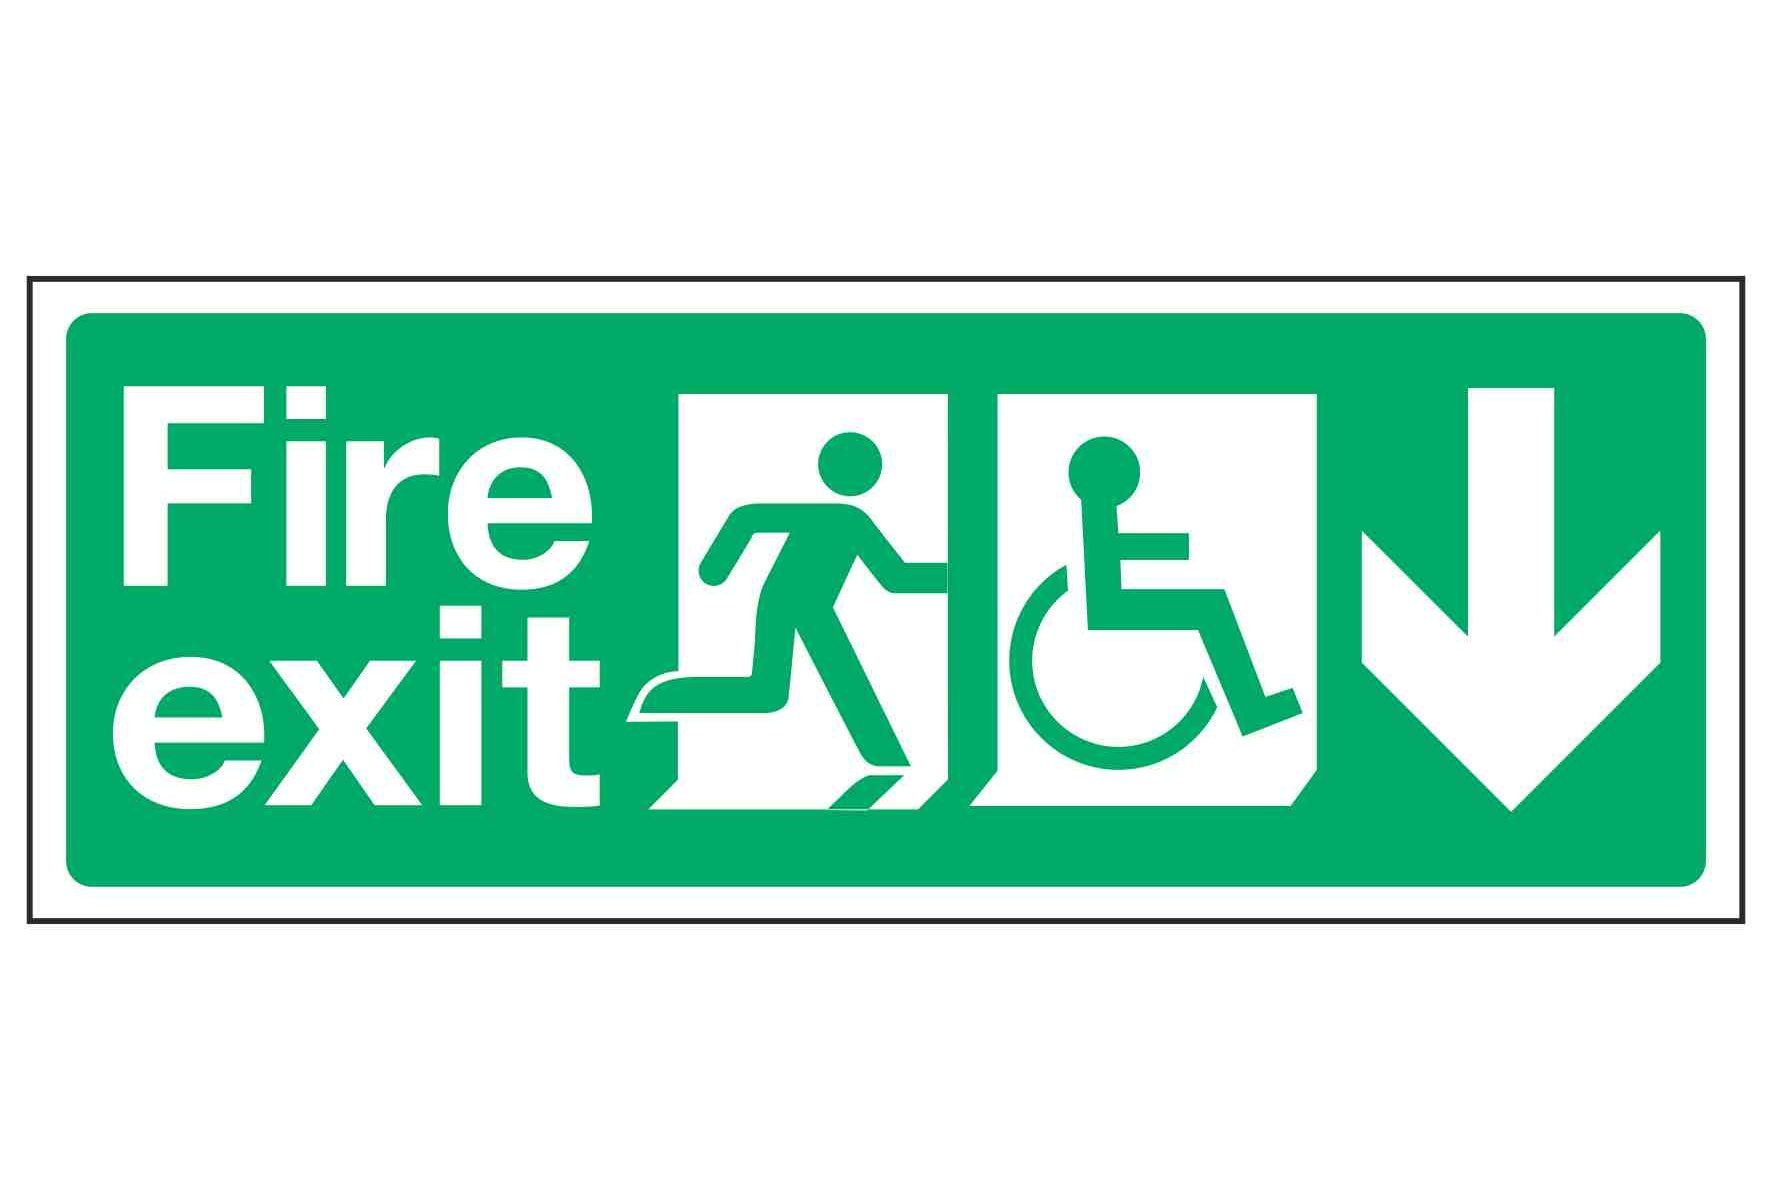 Fire exit / Disabled (Arrow down)